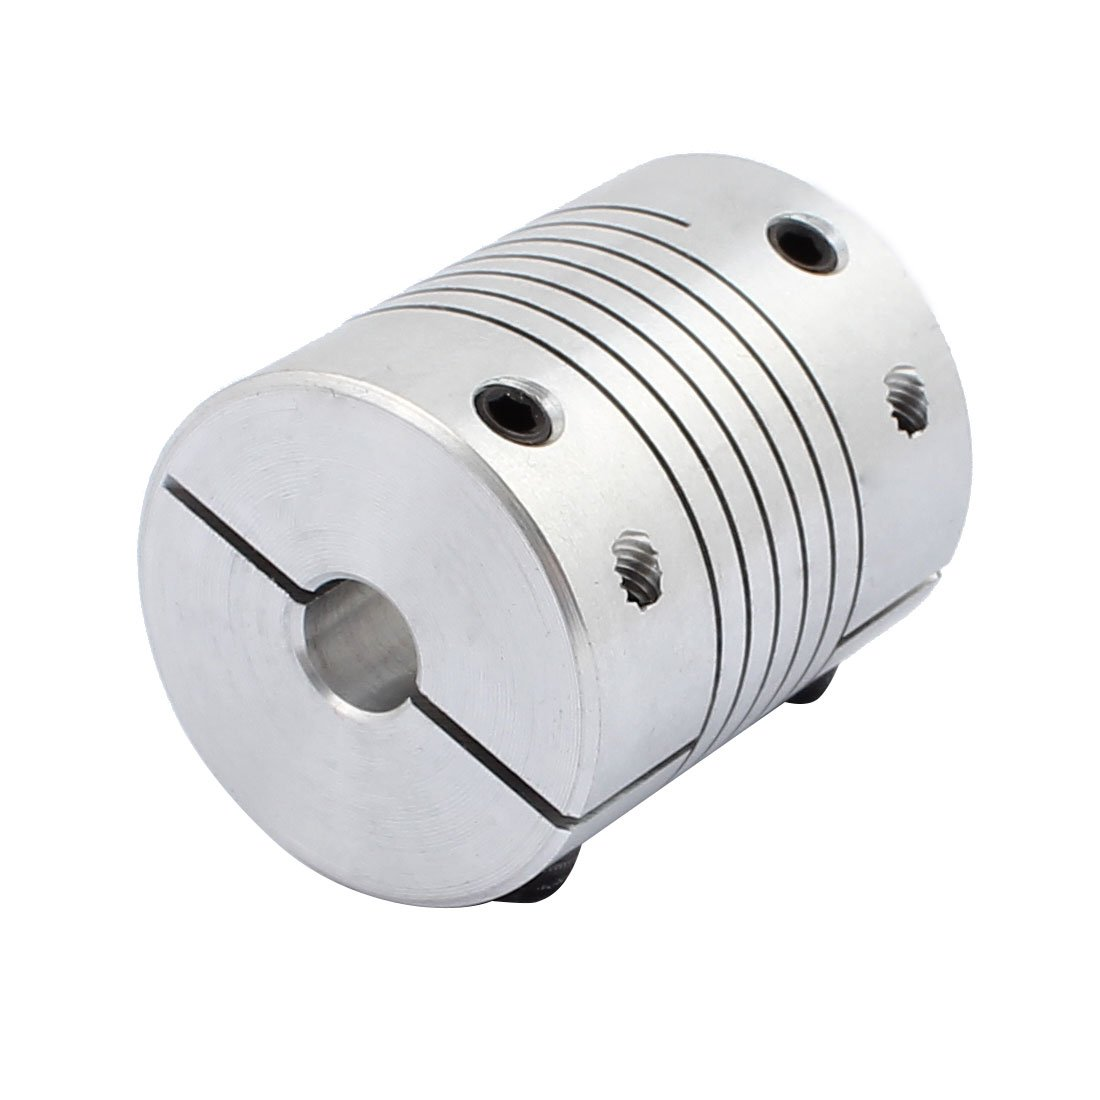 Sourcingmap 8mm to 12mm Shaft Coupling 30mm Length 25mm Diameter Stepper Motor Coupler Aluminum Alloy Joint Connector for 3D Printer CNC Machine DIY Encoder